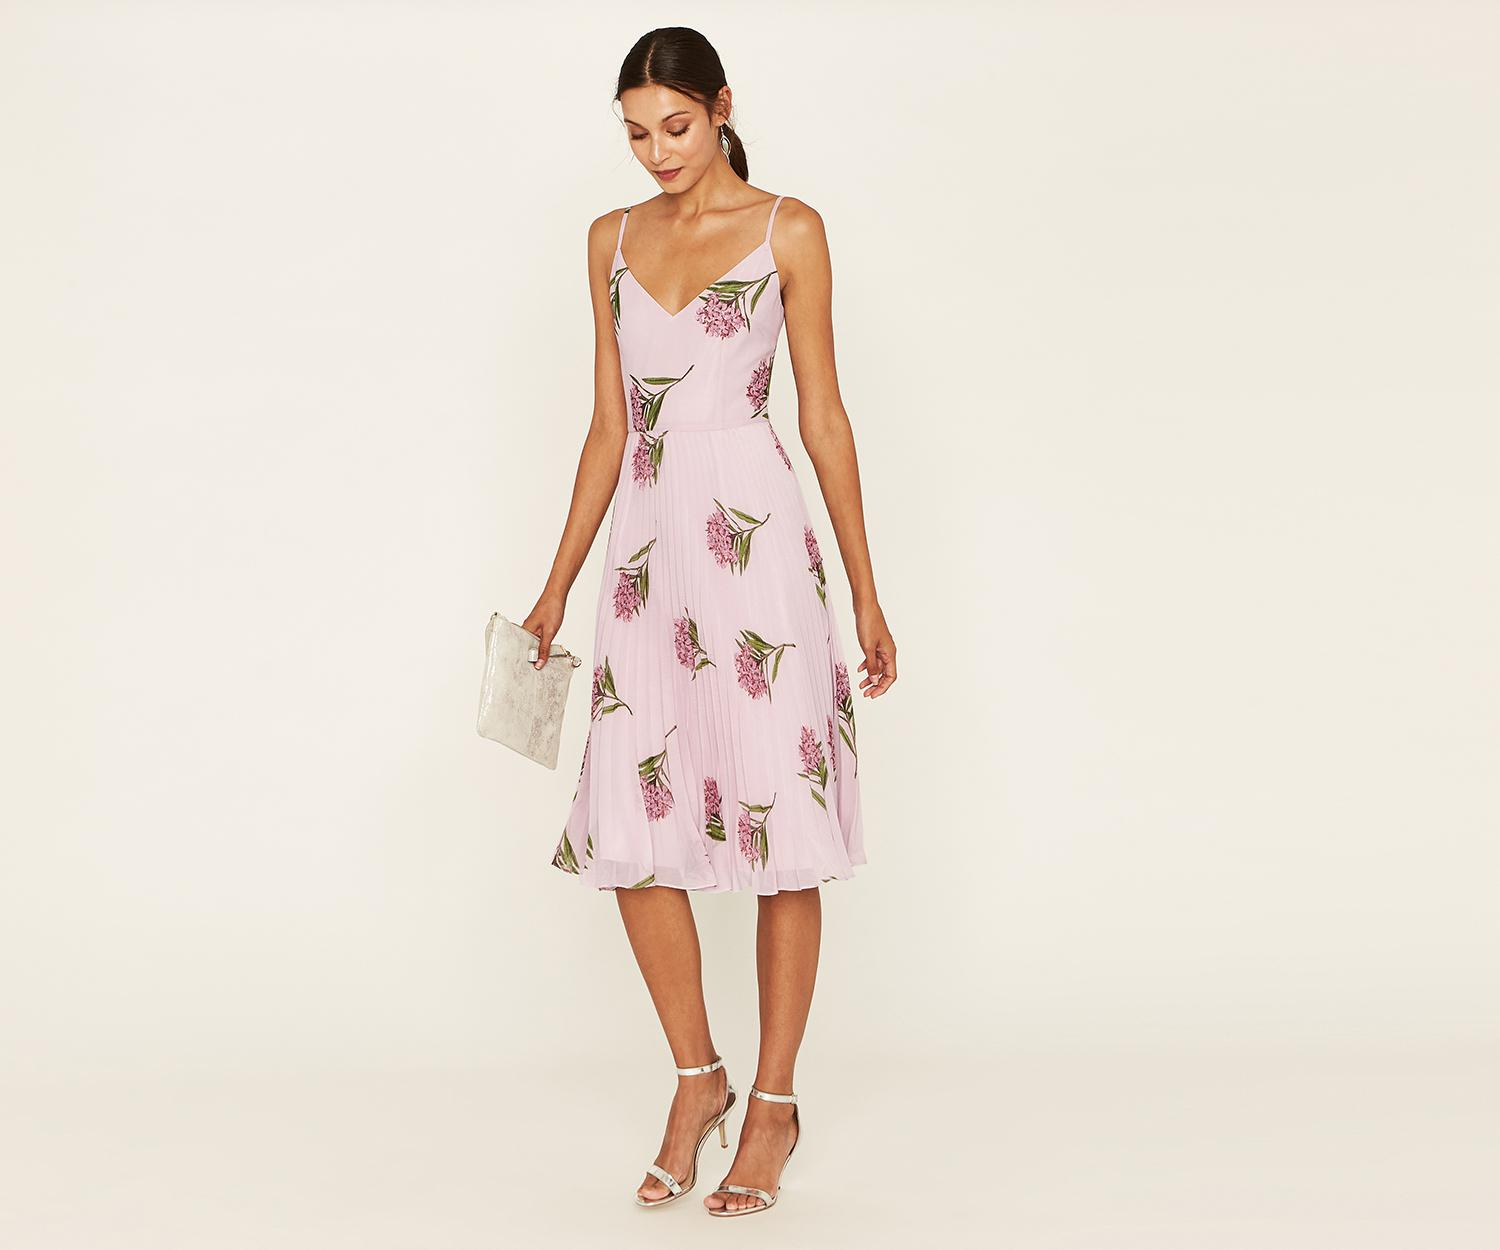 0326df75a5 Oasis Nhm Lace Midi Dress in Pink - Lyst